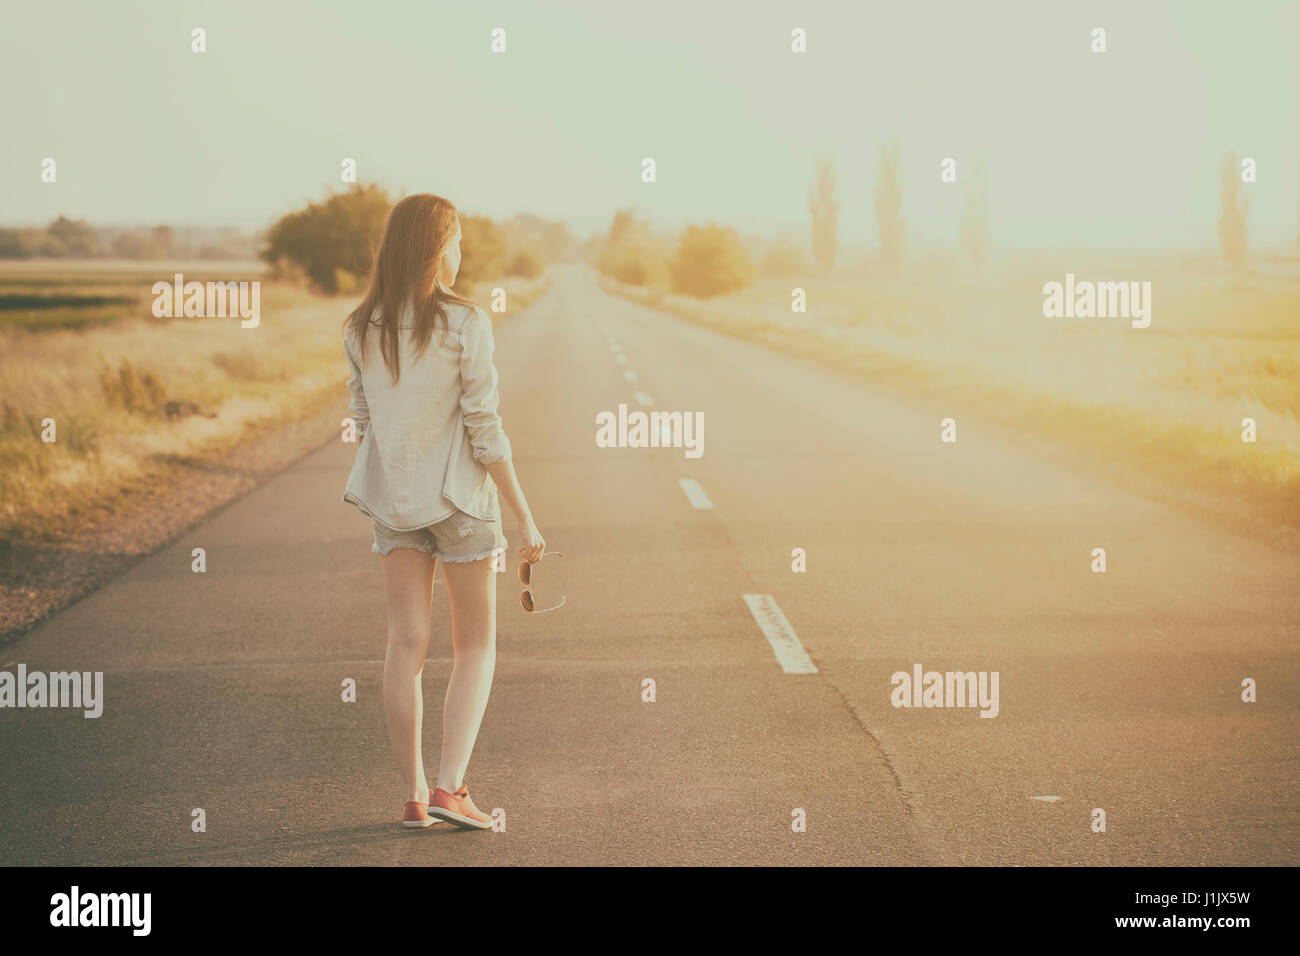 Hitchhiker woman on the road in summer sunset - Stock Image